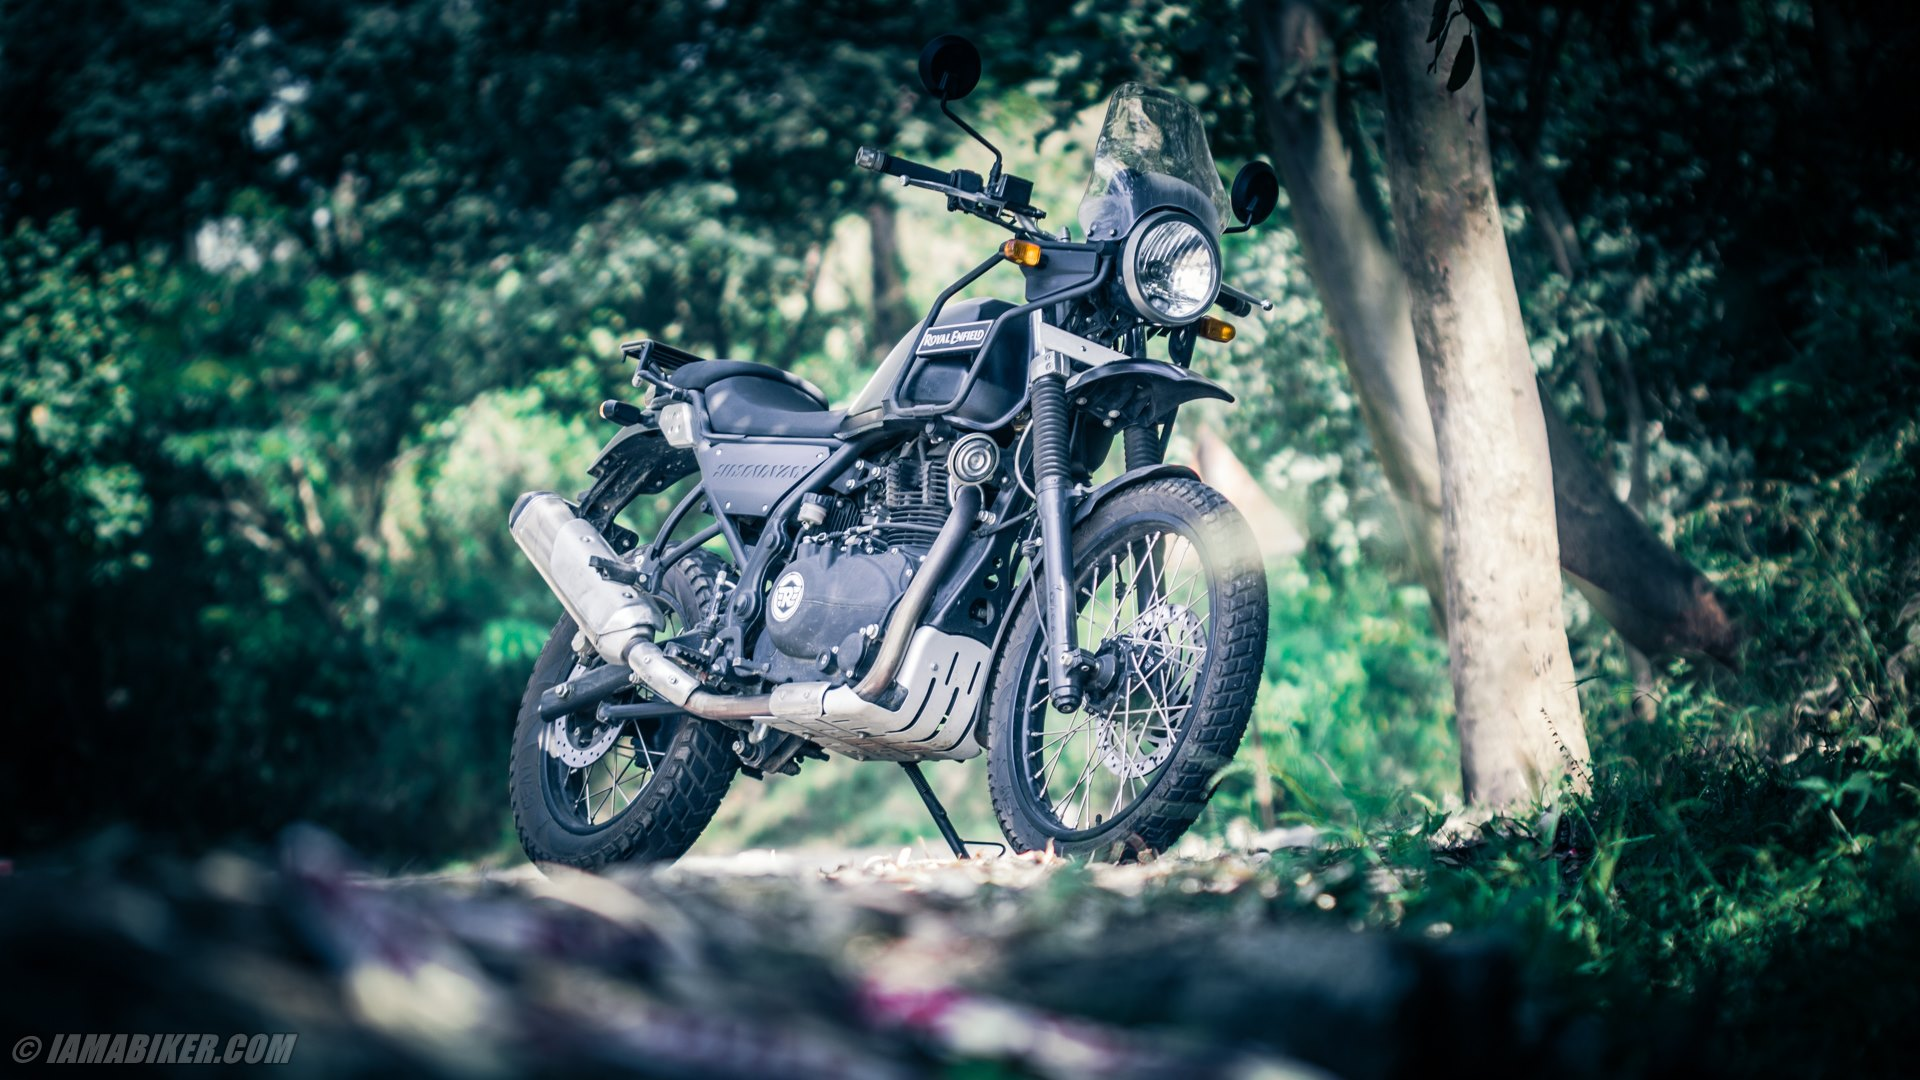 Royal Enfield Himalayan Hd Wallpapers Iamabiker